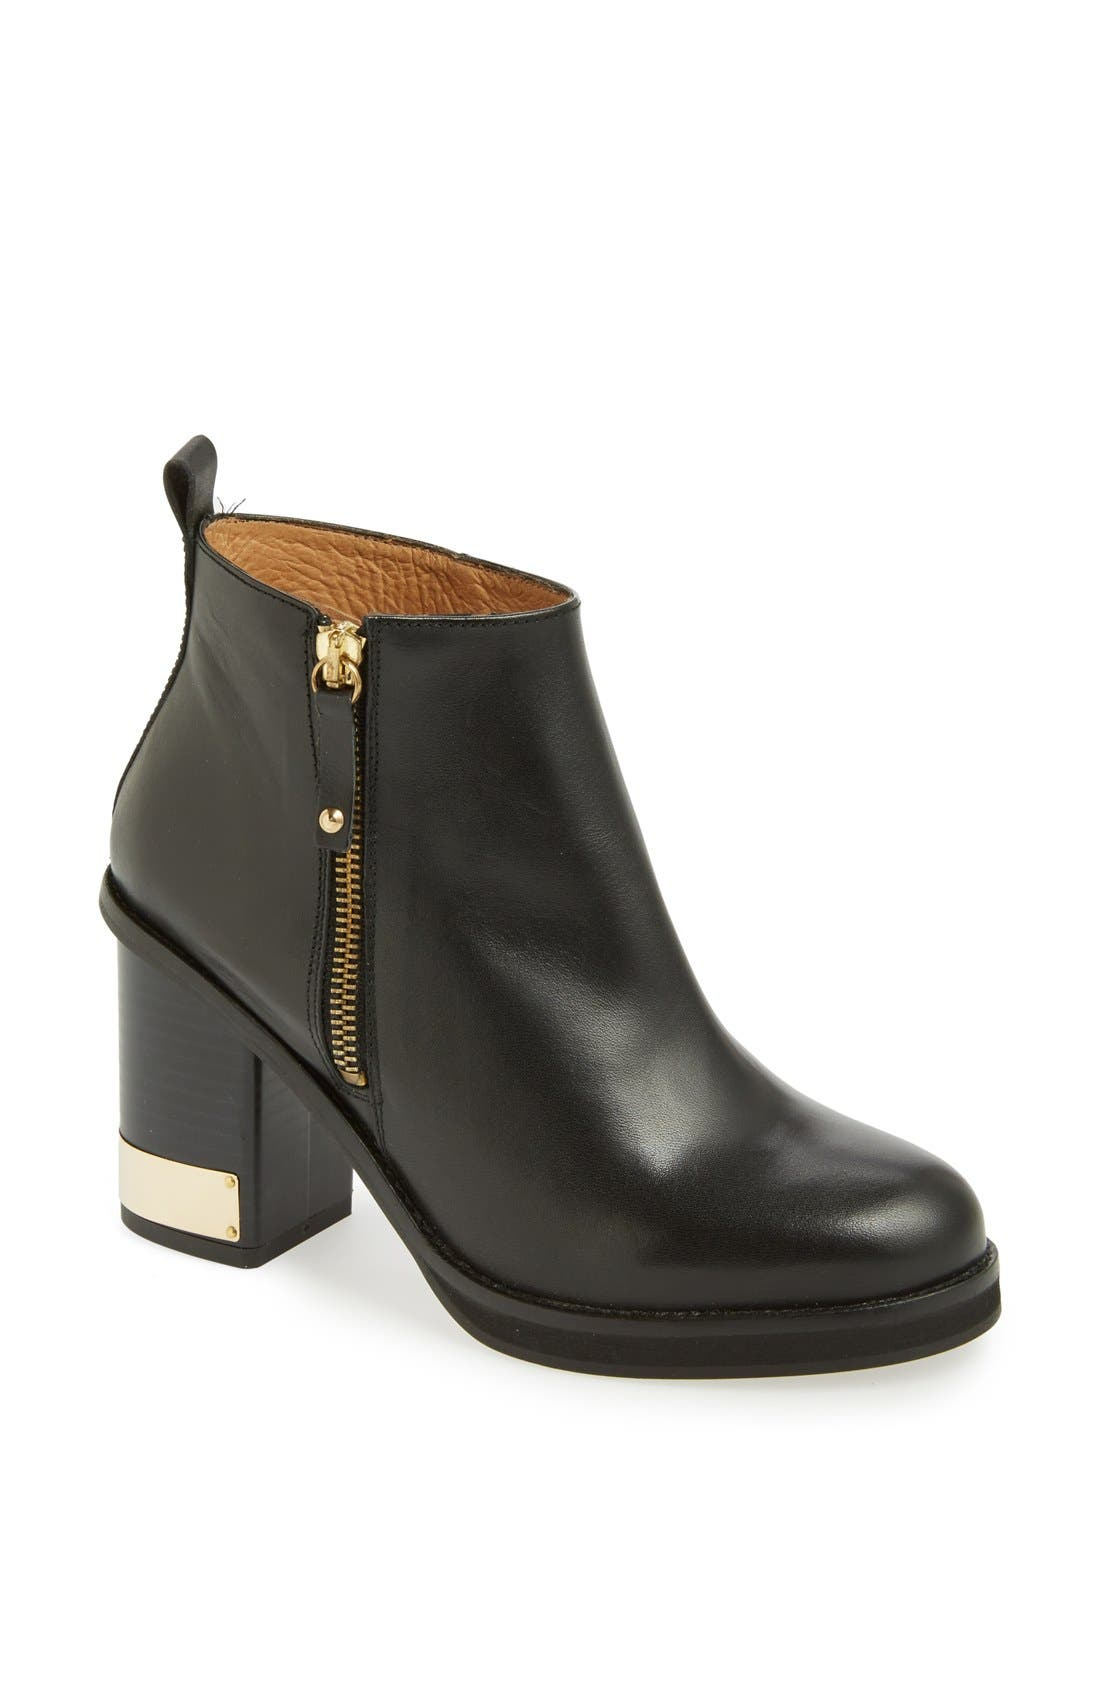 Main Image - Topshop 'All Ours' Ankle Boot